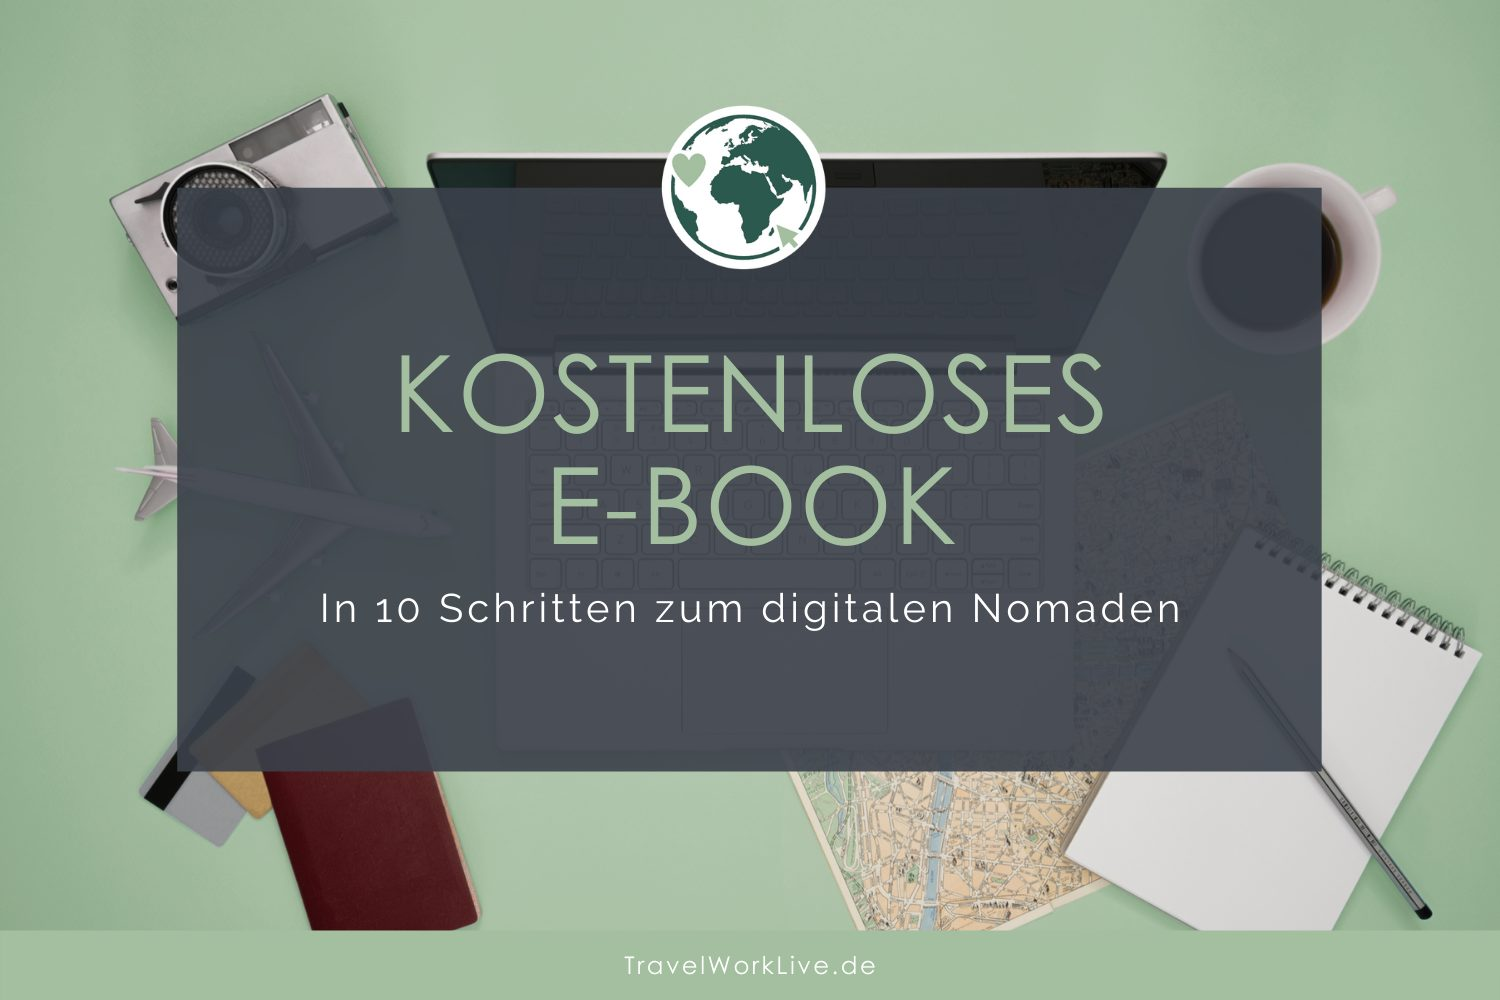 In 10 Schritten zum digitalen Nomaden - E-Book Header